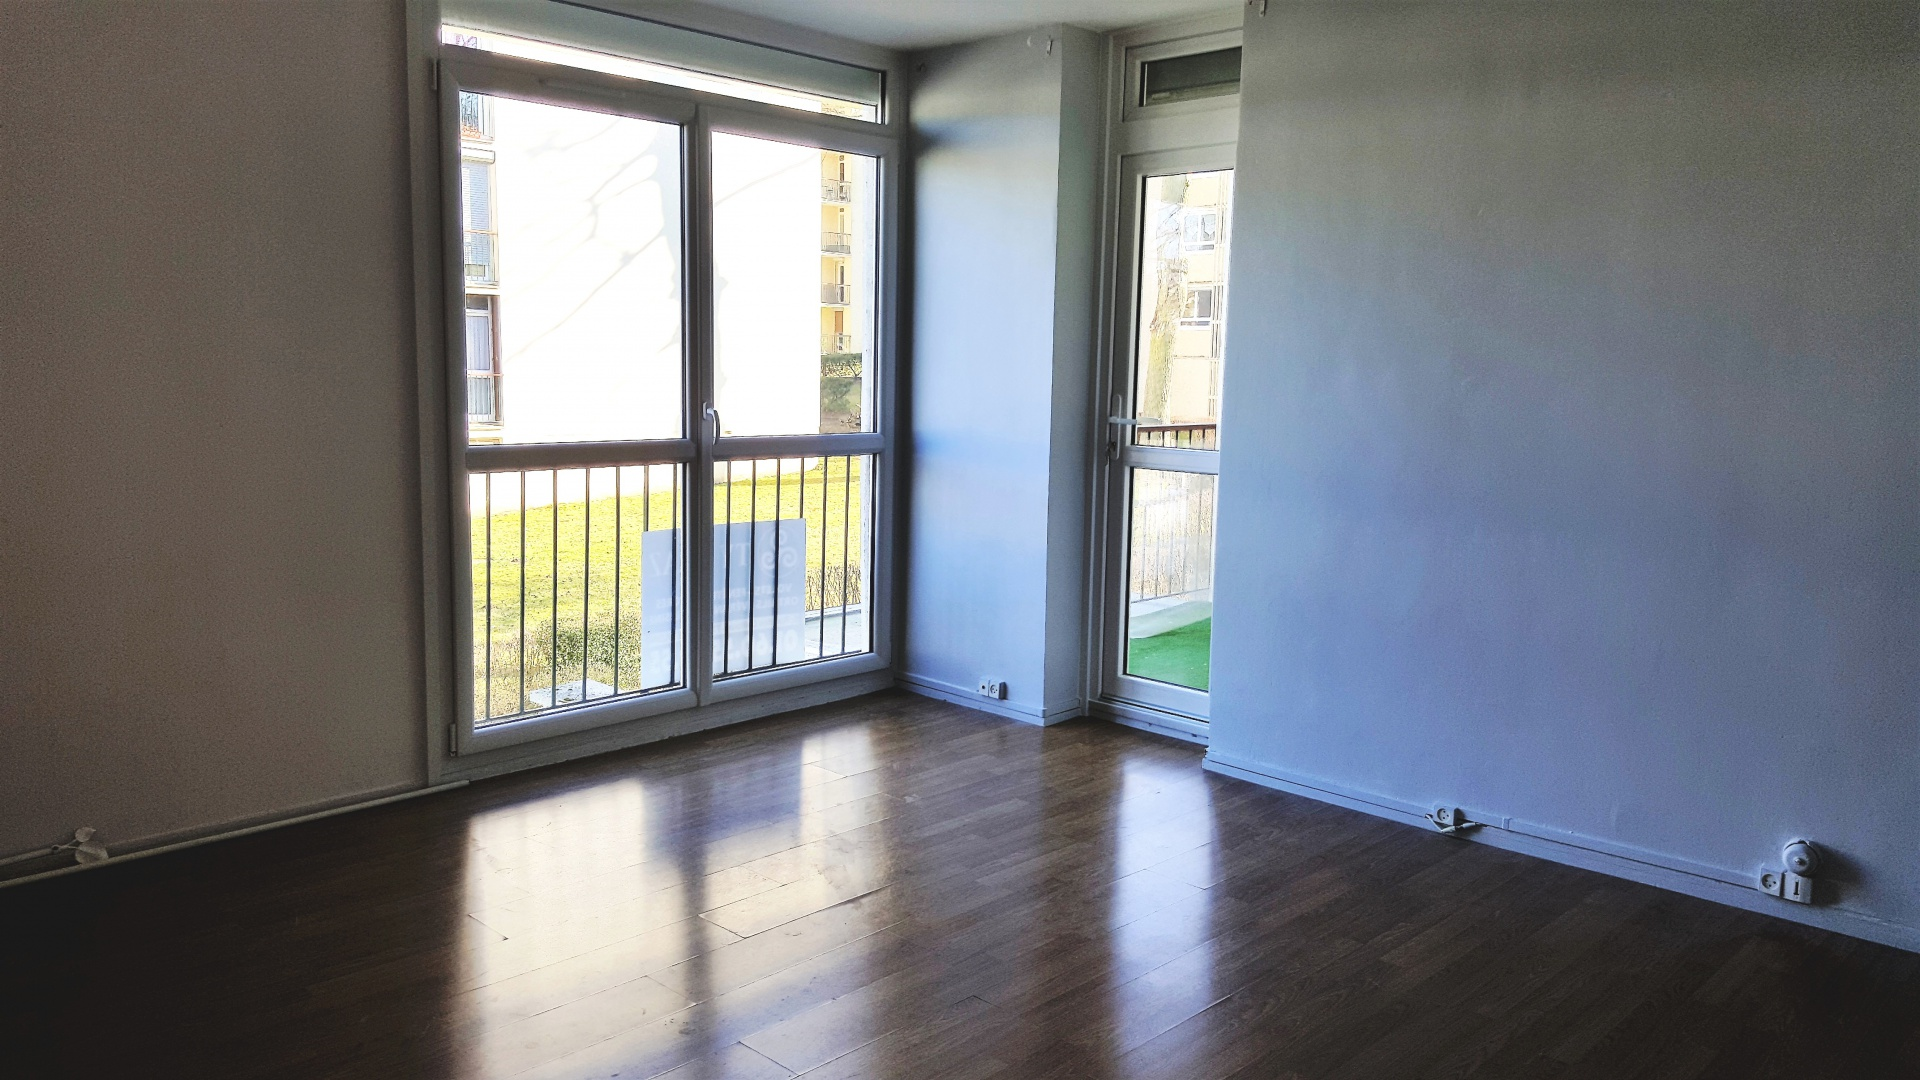 Annonce location appartement avon 77210 71 m 820 for Annonce location appartement